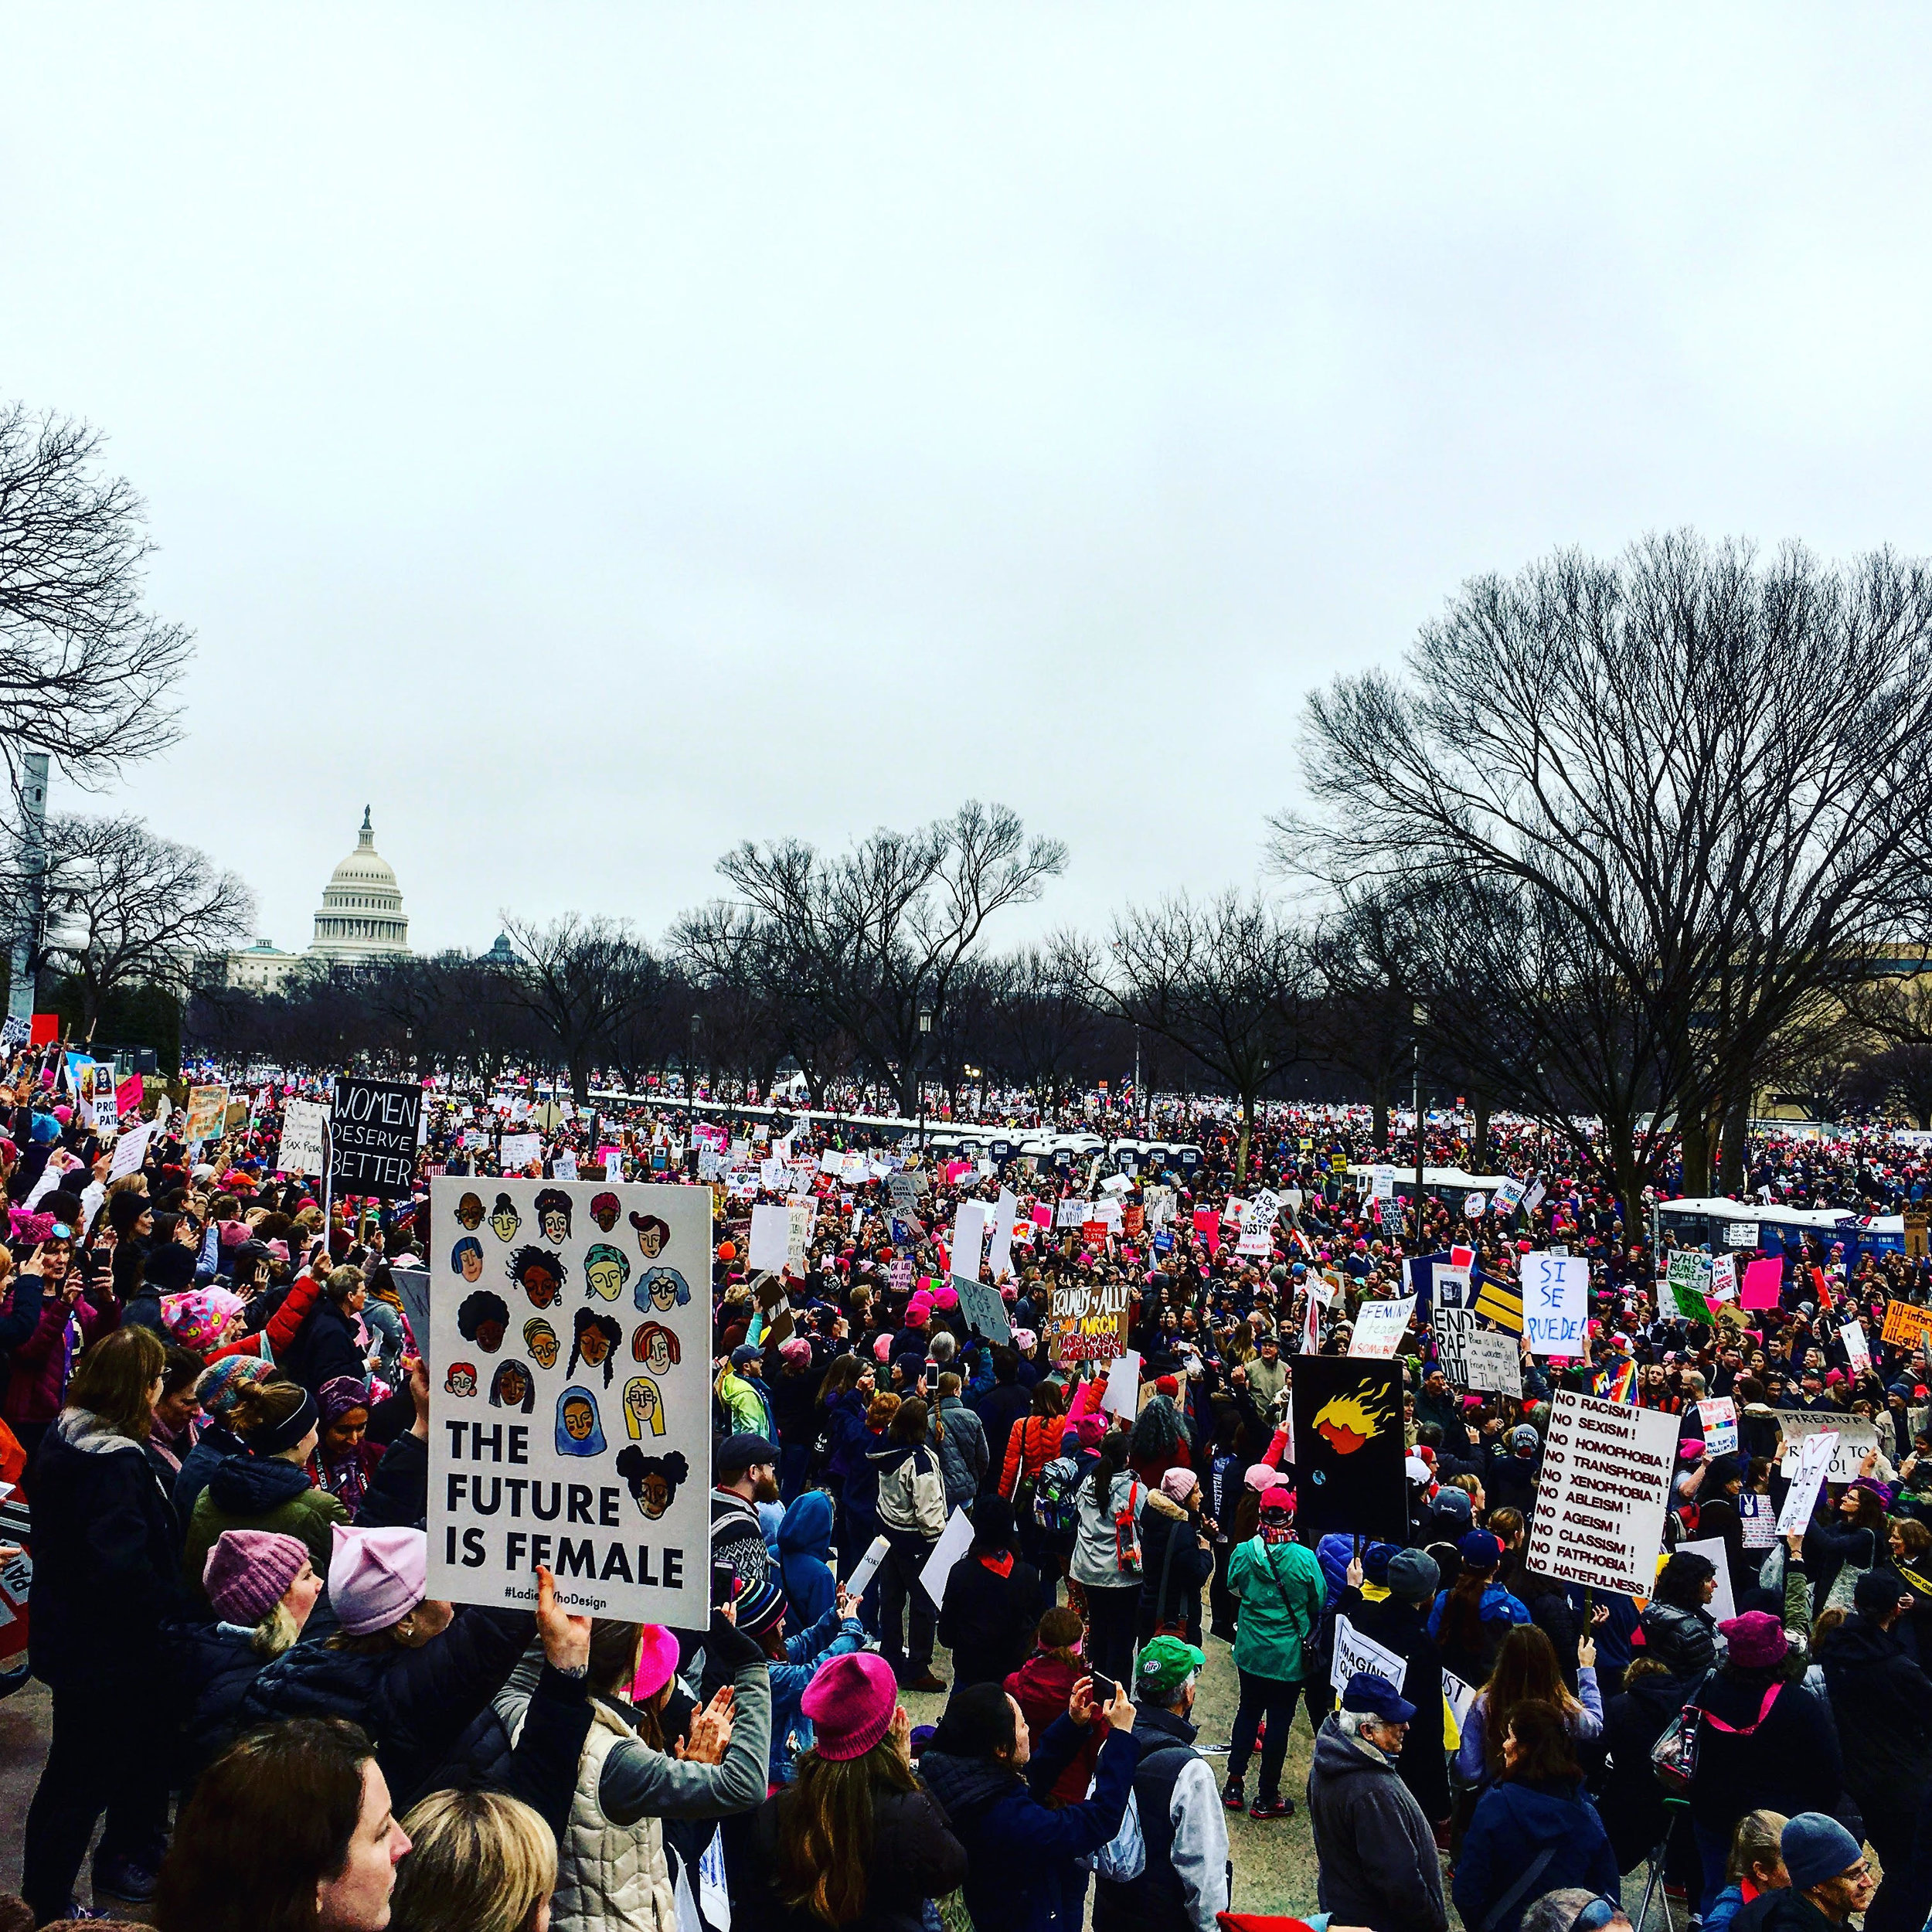 The scene at noon on Saturday. I intended to take it from the same spot as the previous day, however getting onto the actual Mall was impossible at this point. (Sheila Murray)